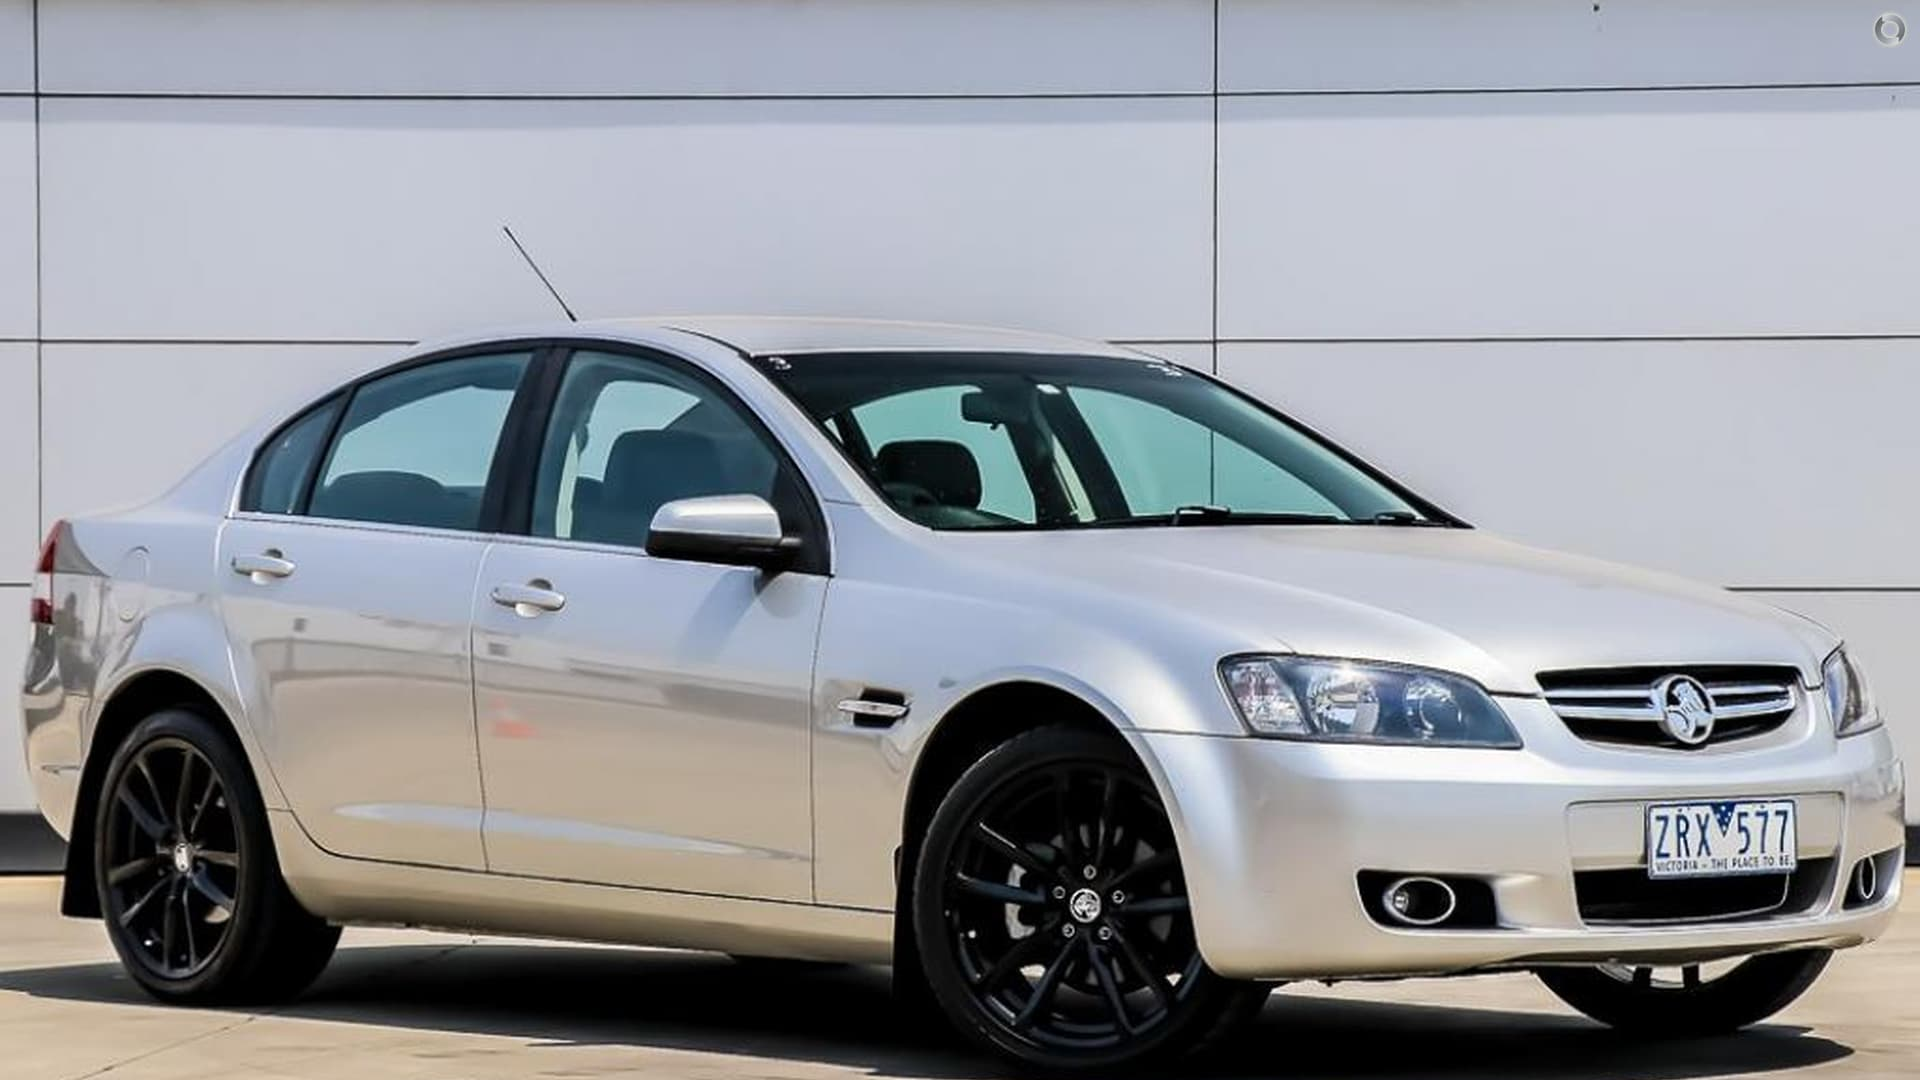 2006 Holden Berlina  VE